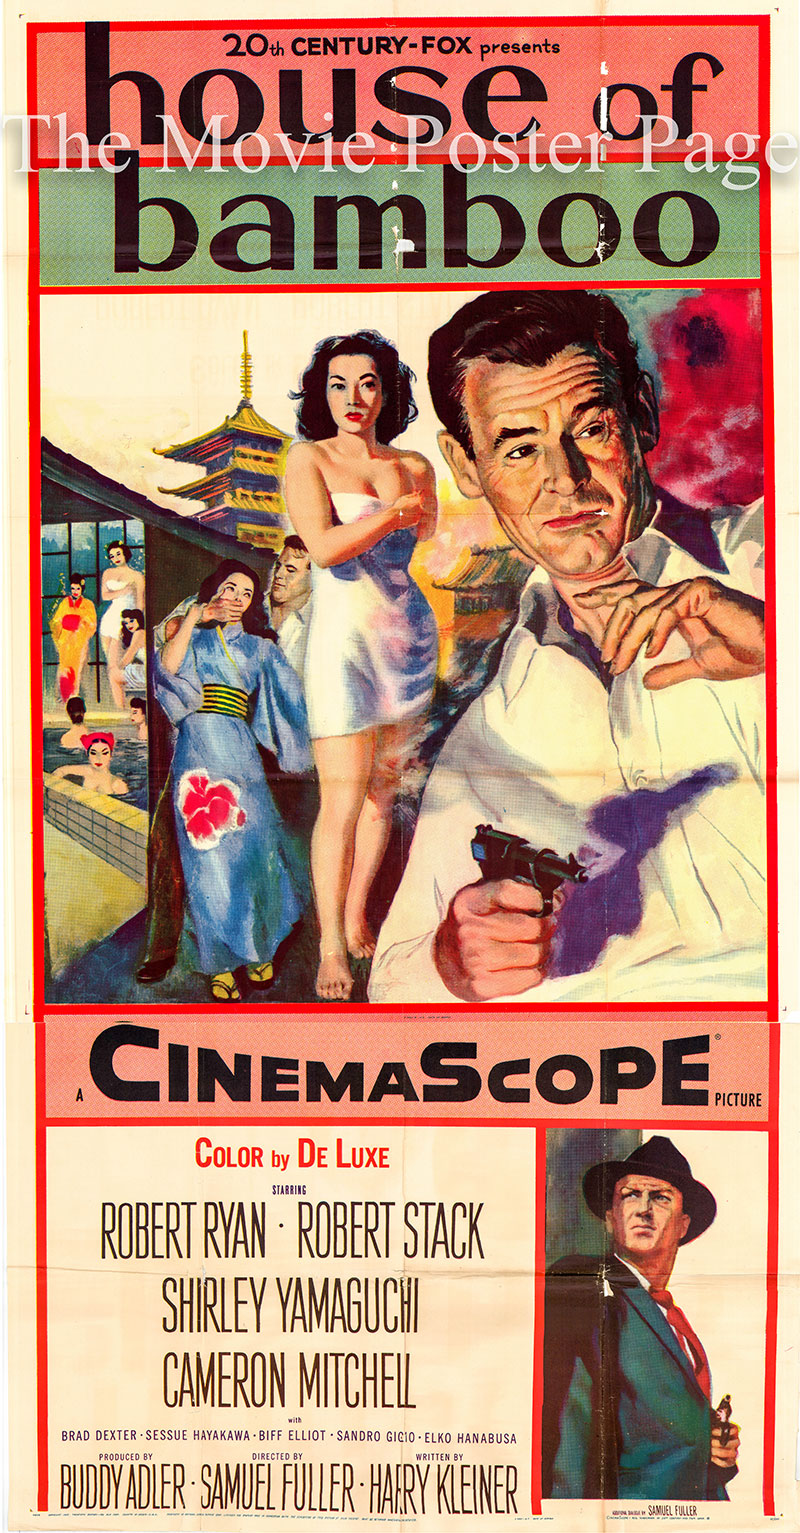 Pictured is a US three-sheet promotional poster for the 1955 Samuel Fuller film House of Bamboo starring Robert Ryan.